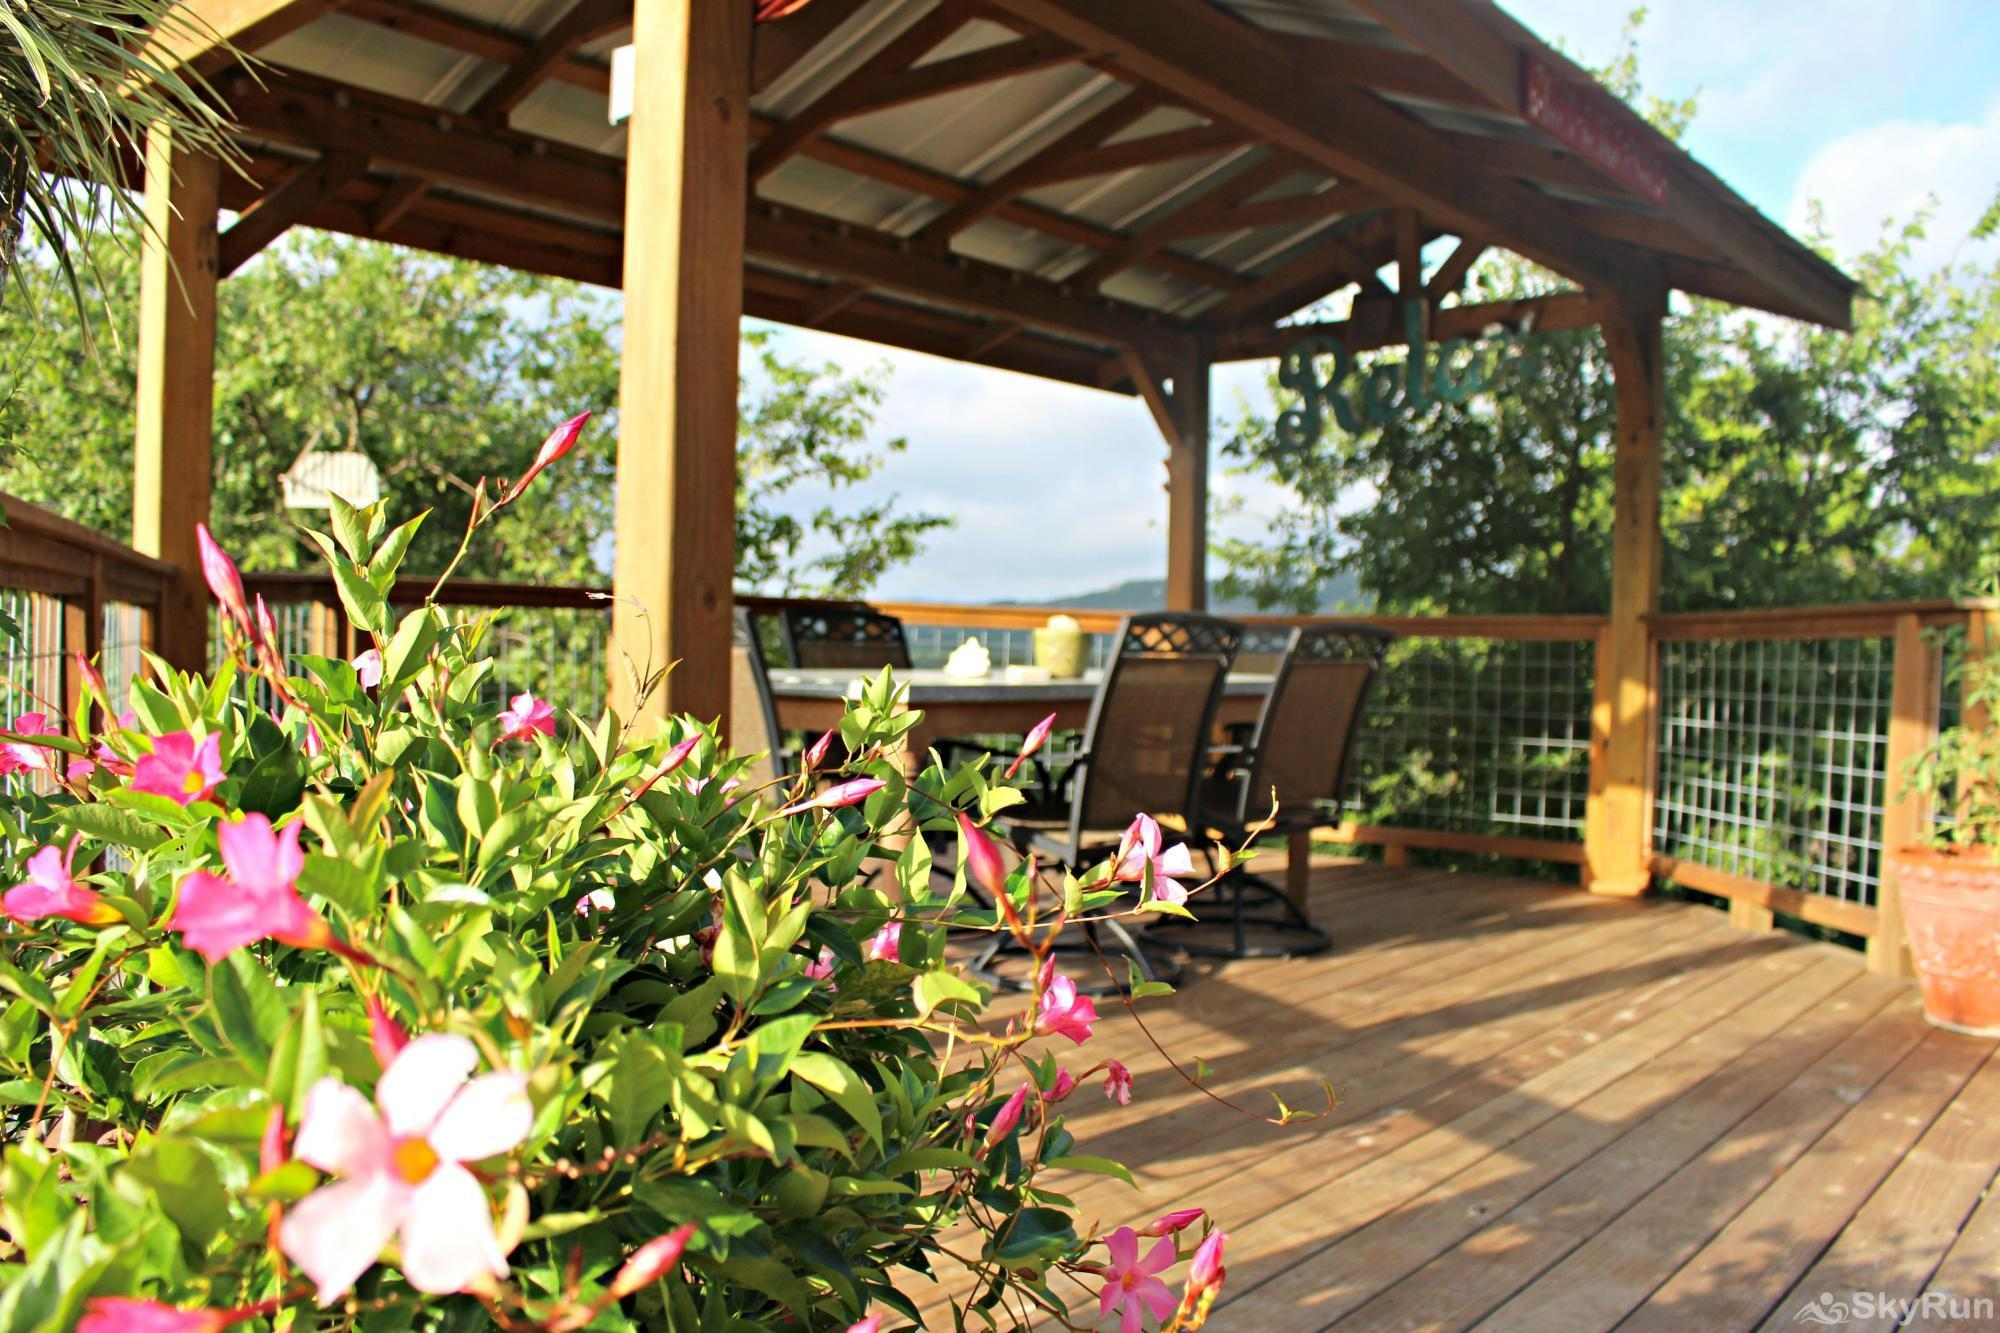 COOLVIEW CABIN Your New Favorite Wimberley Getaway